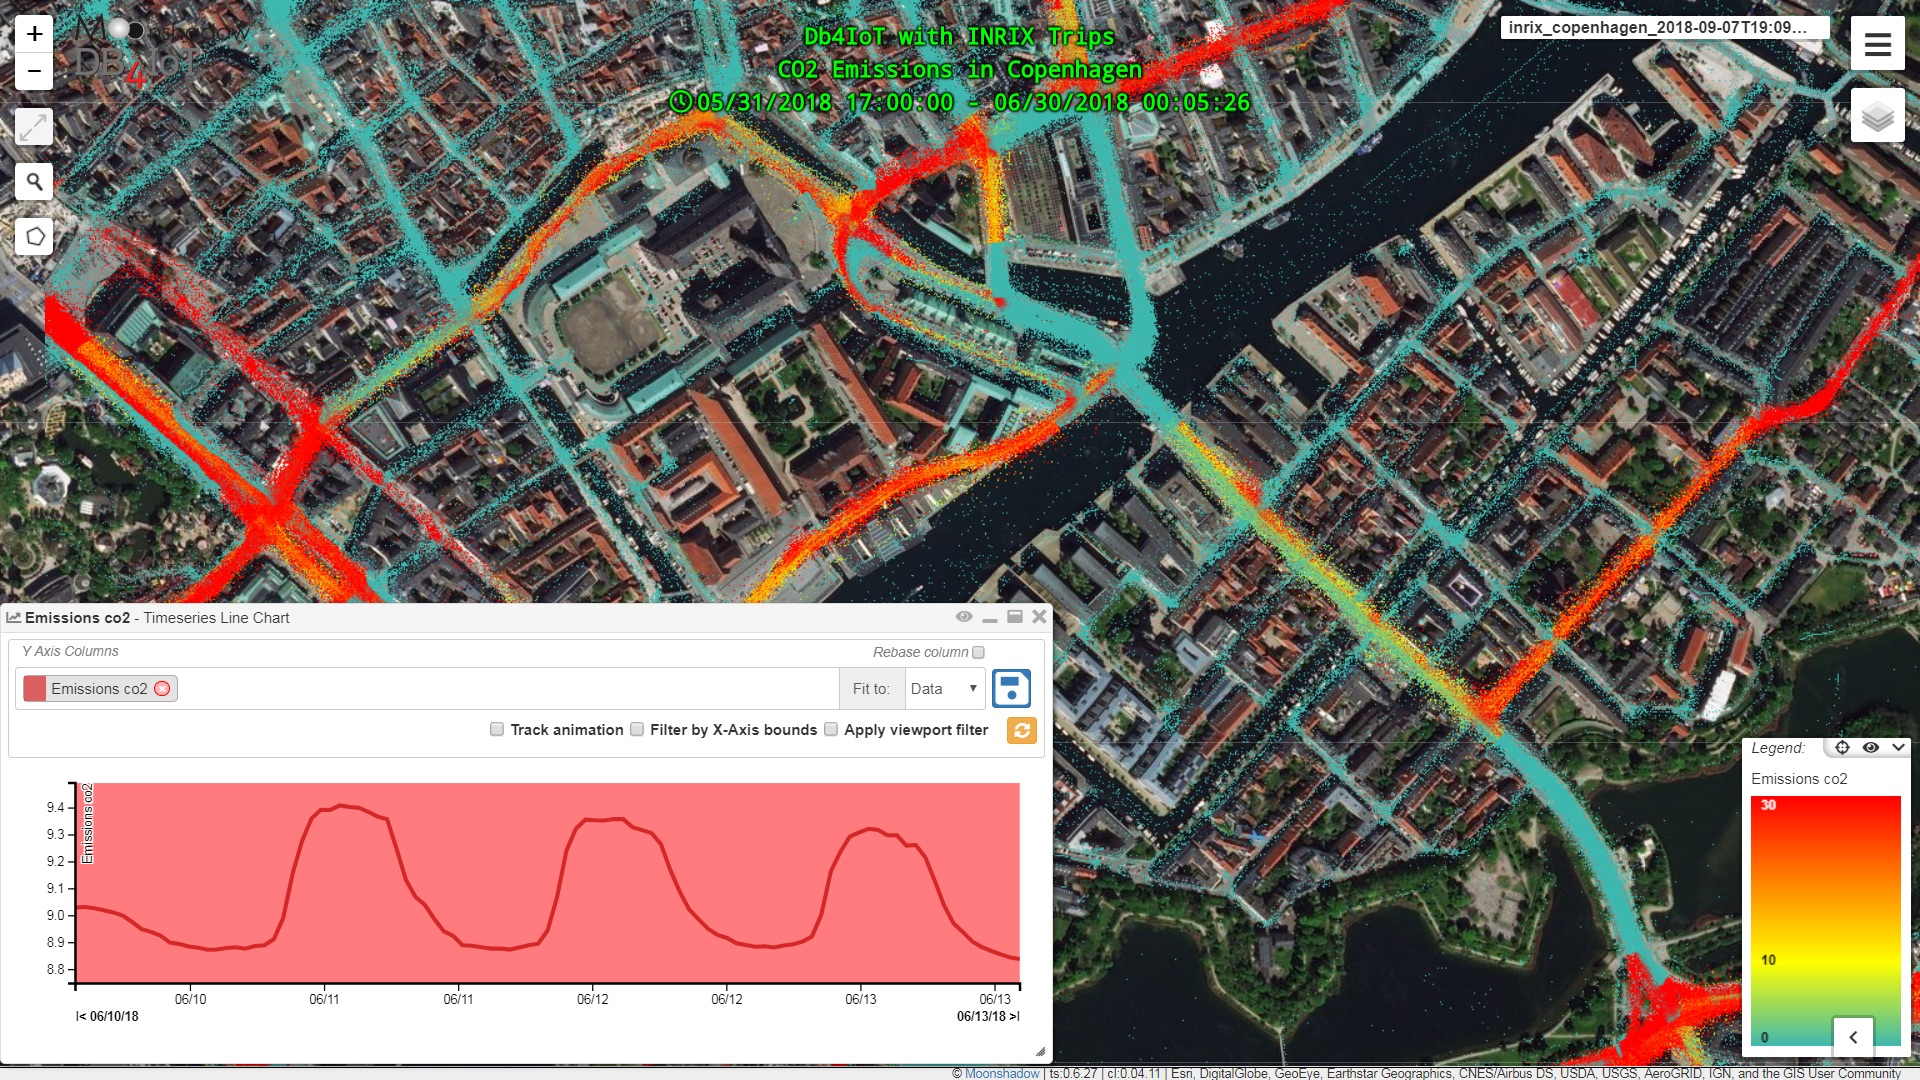 DB4IoT with INRIX Trips - CO2 Emissions in Copenhagen over Satellite Zoom 15